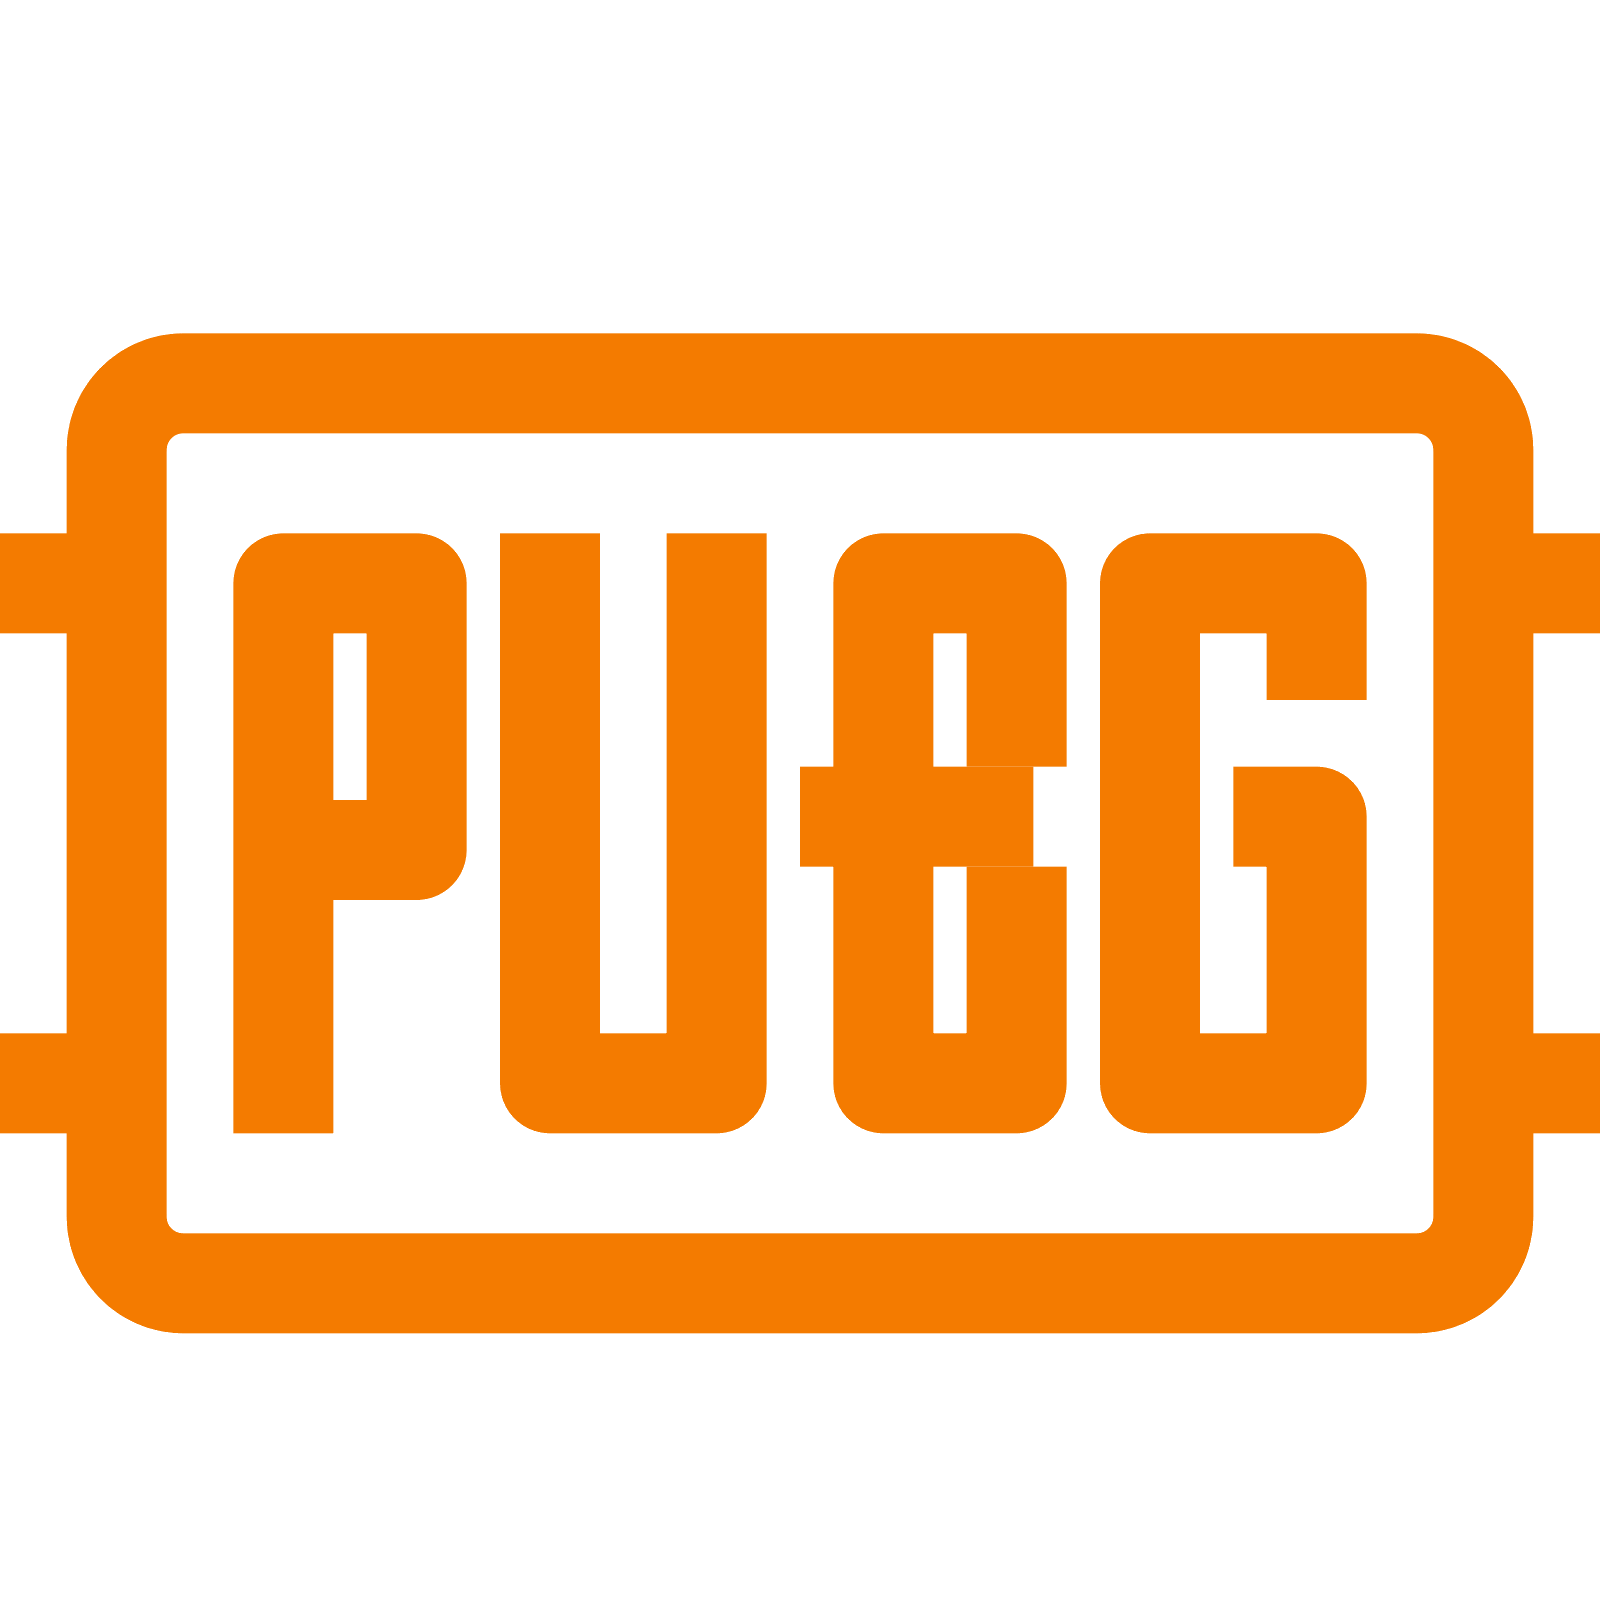 pubg logos brands and logotypes #10222